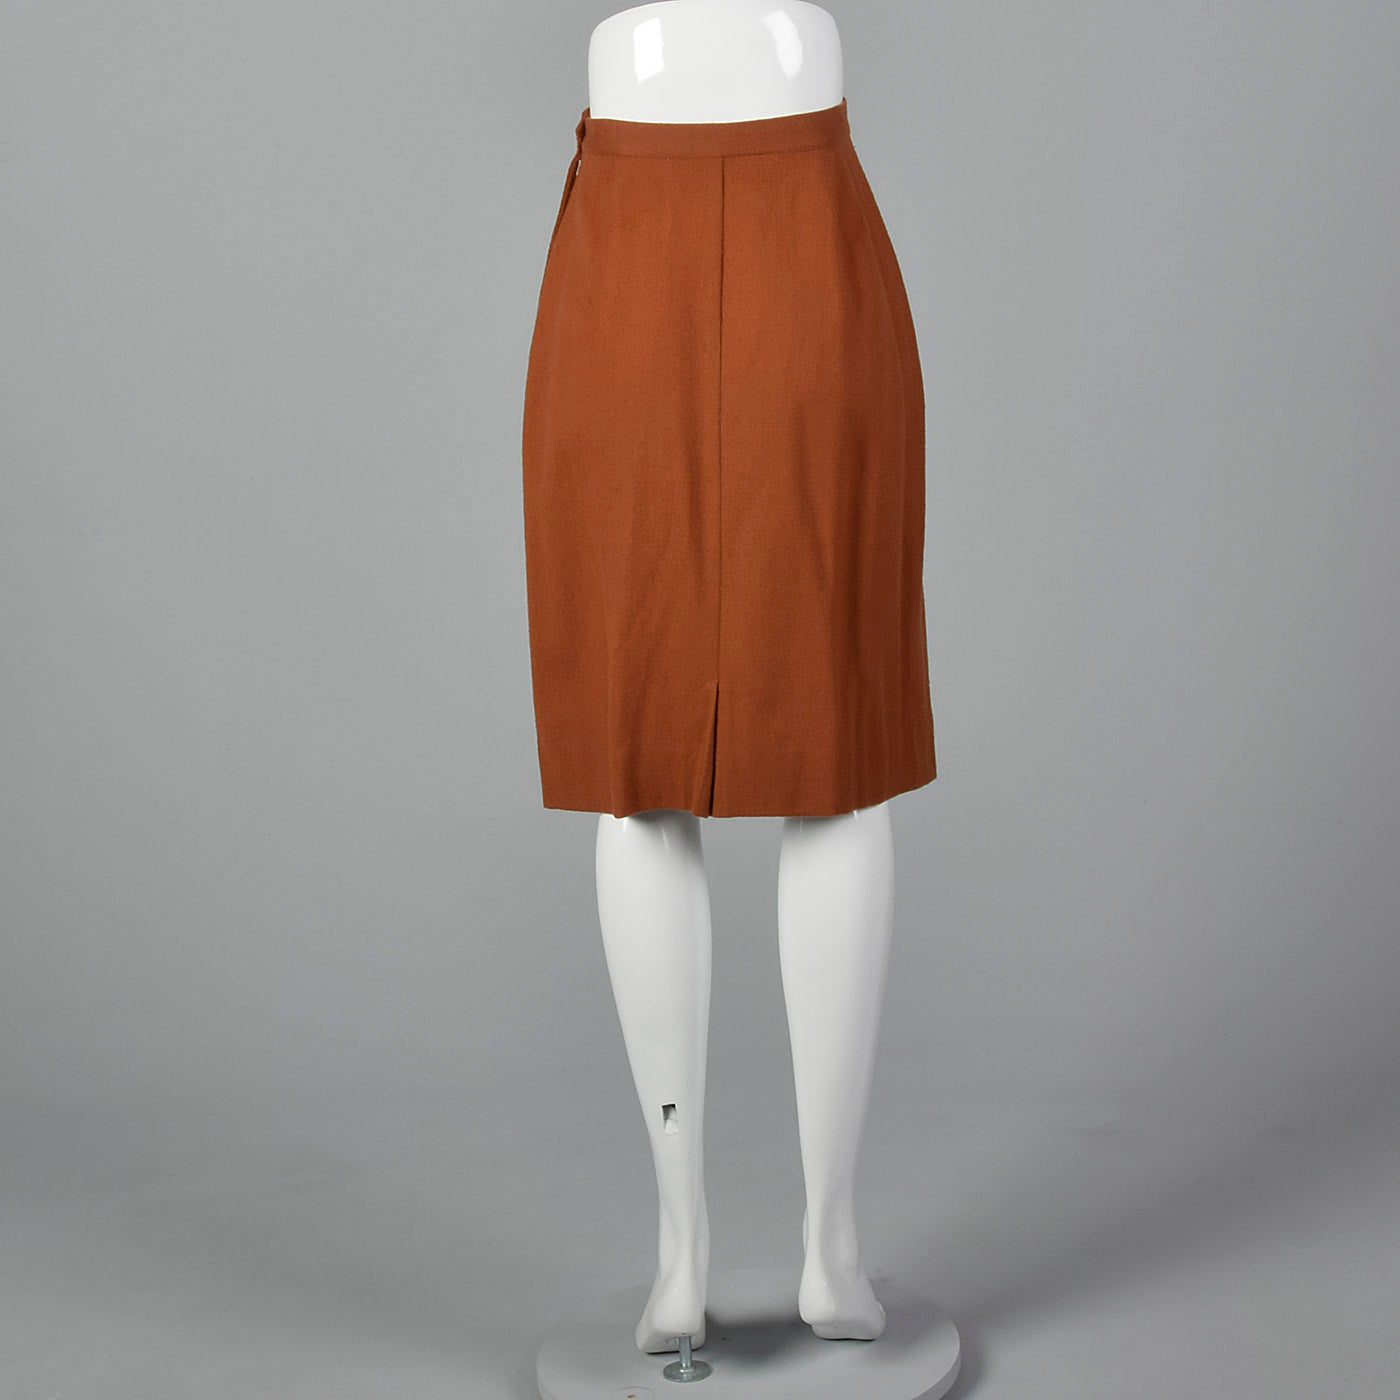 1950s Wool Pencil Skirt in Gorgeous Rust